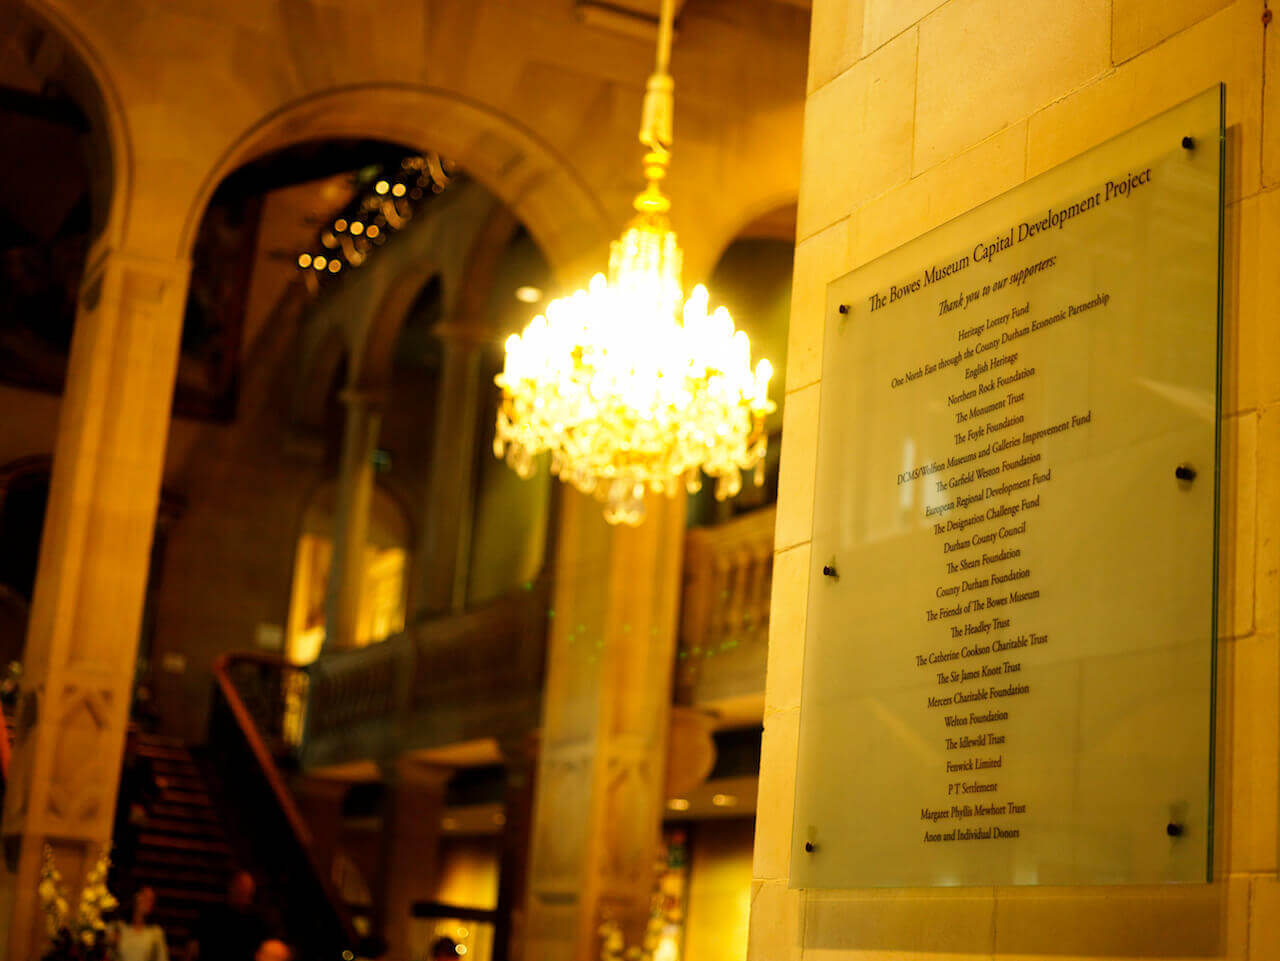 A glass sign showing the names of funders and supporters of The Bowes Museum